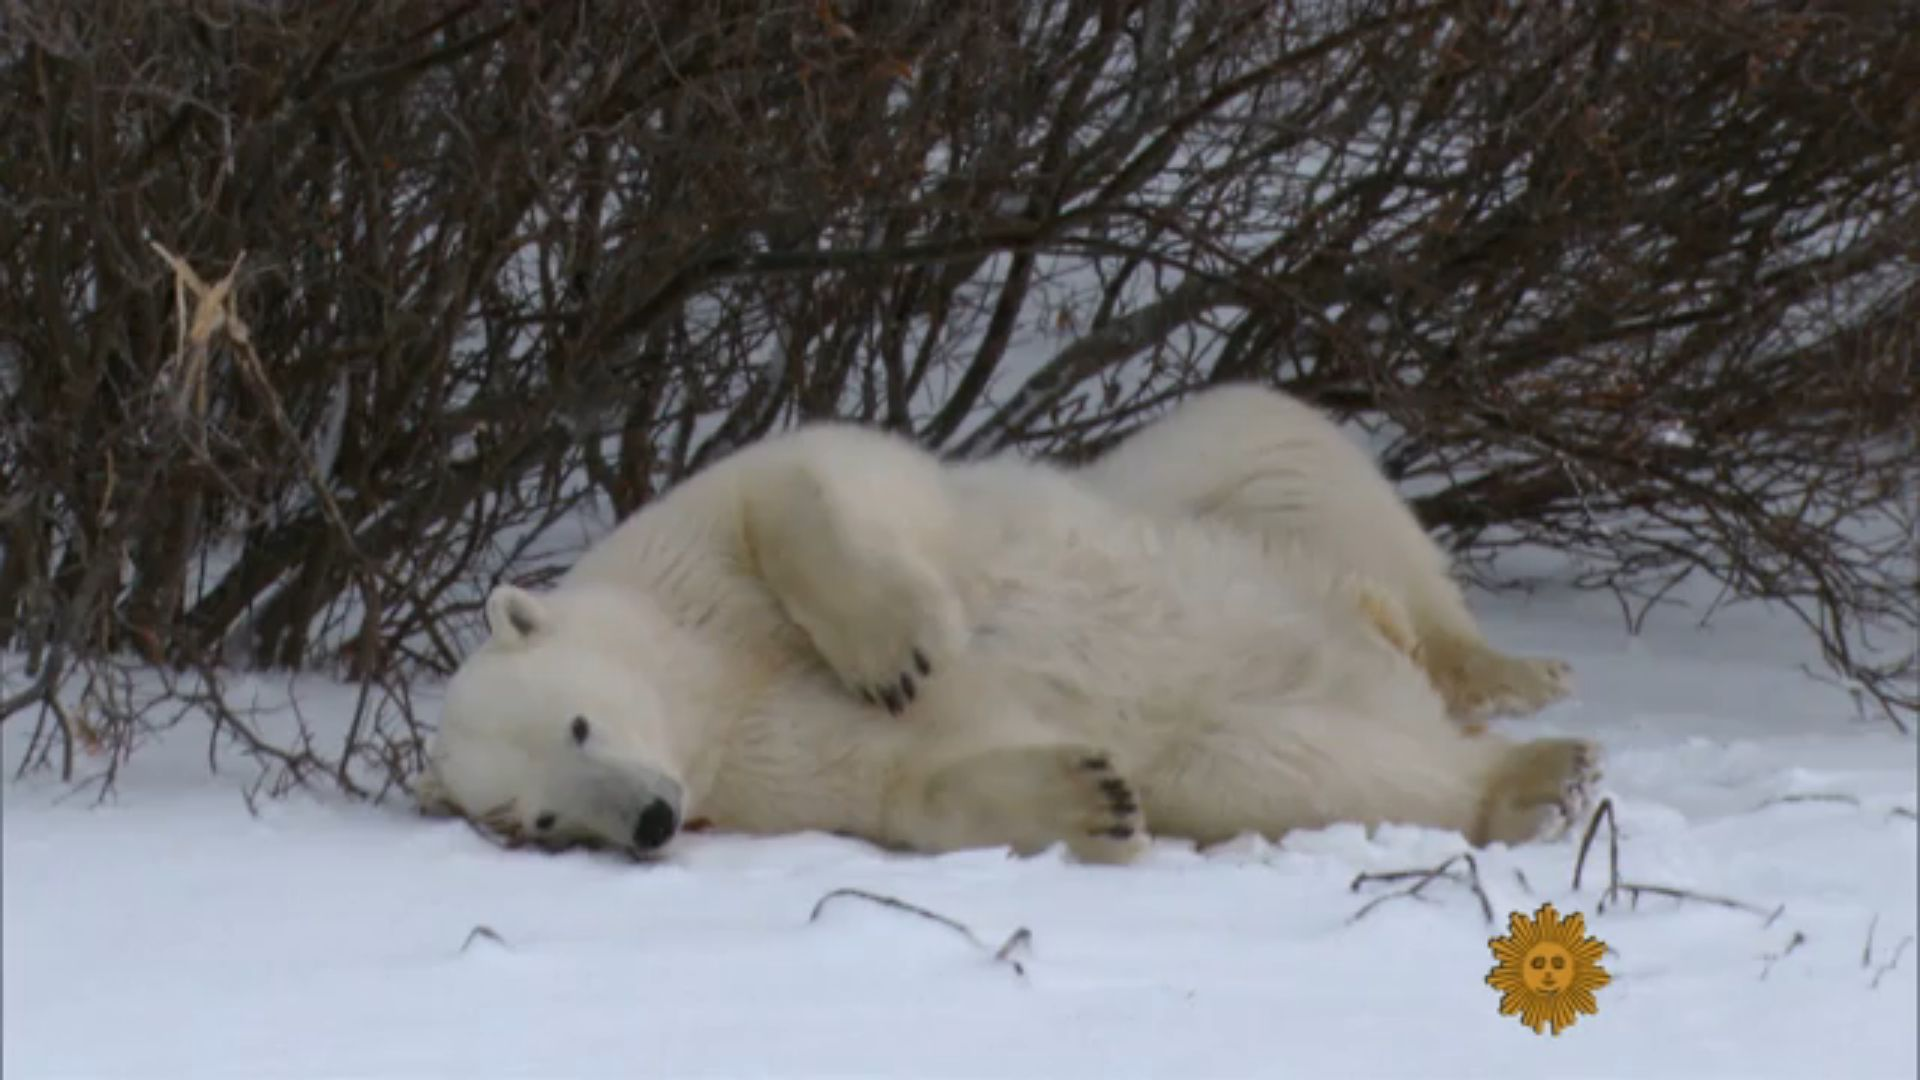 Click the image above and you'll be taken to the CBS Sunday Morning segment on polar bears.